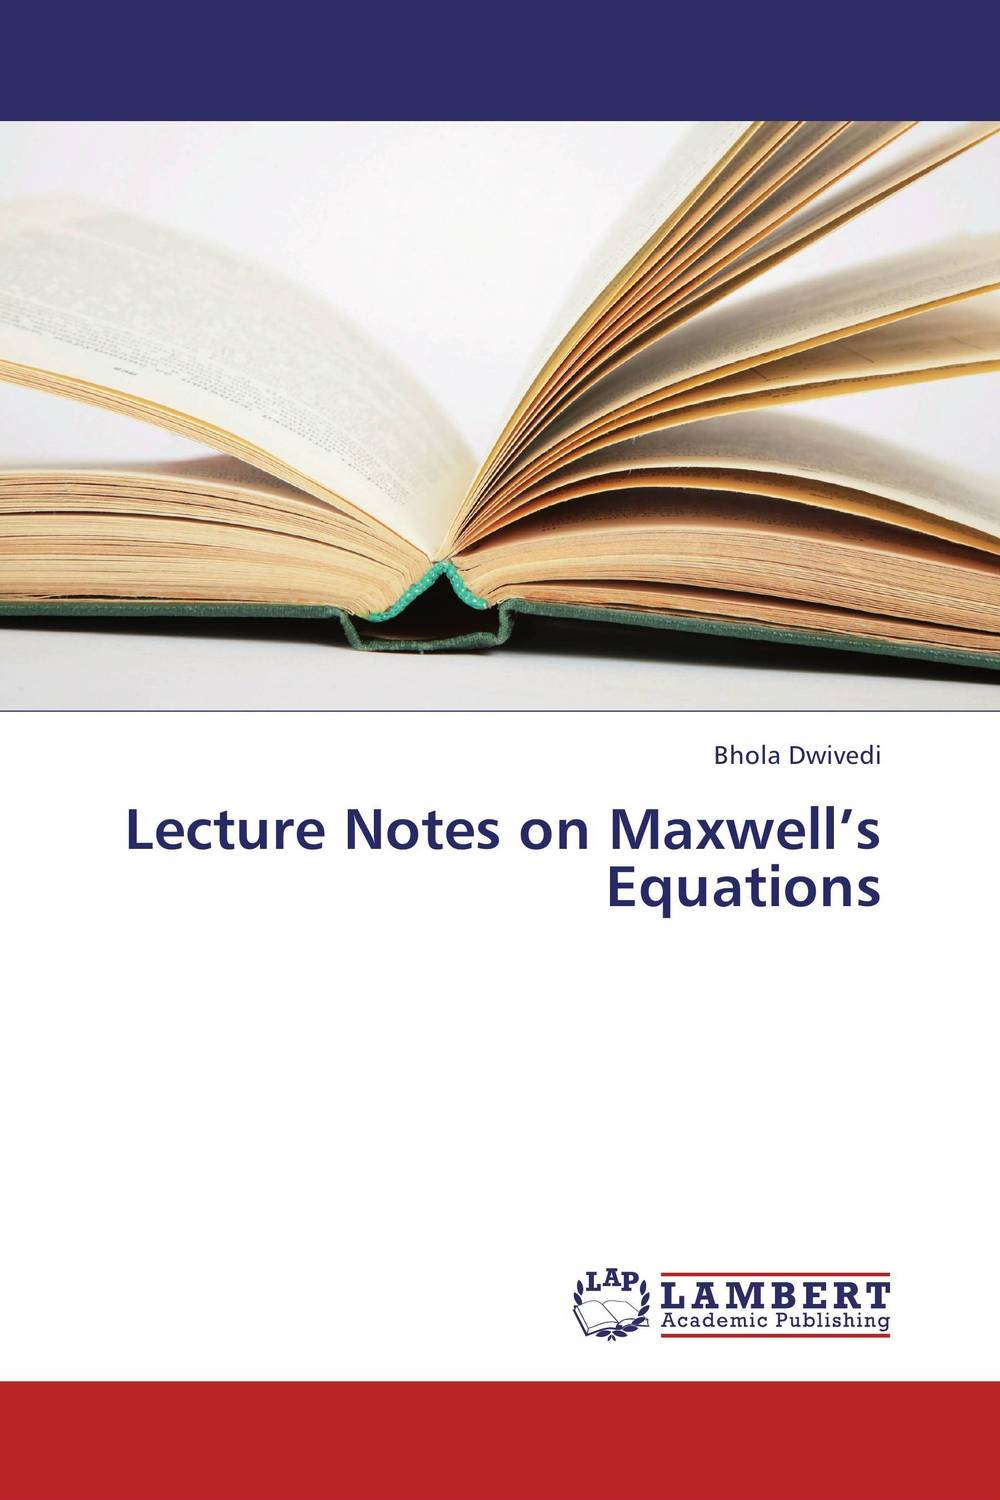 Lecture Notes on Maxwell's Equations